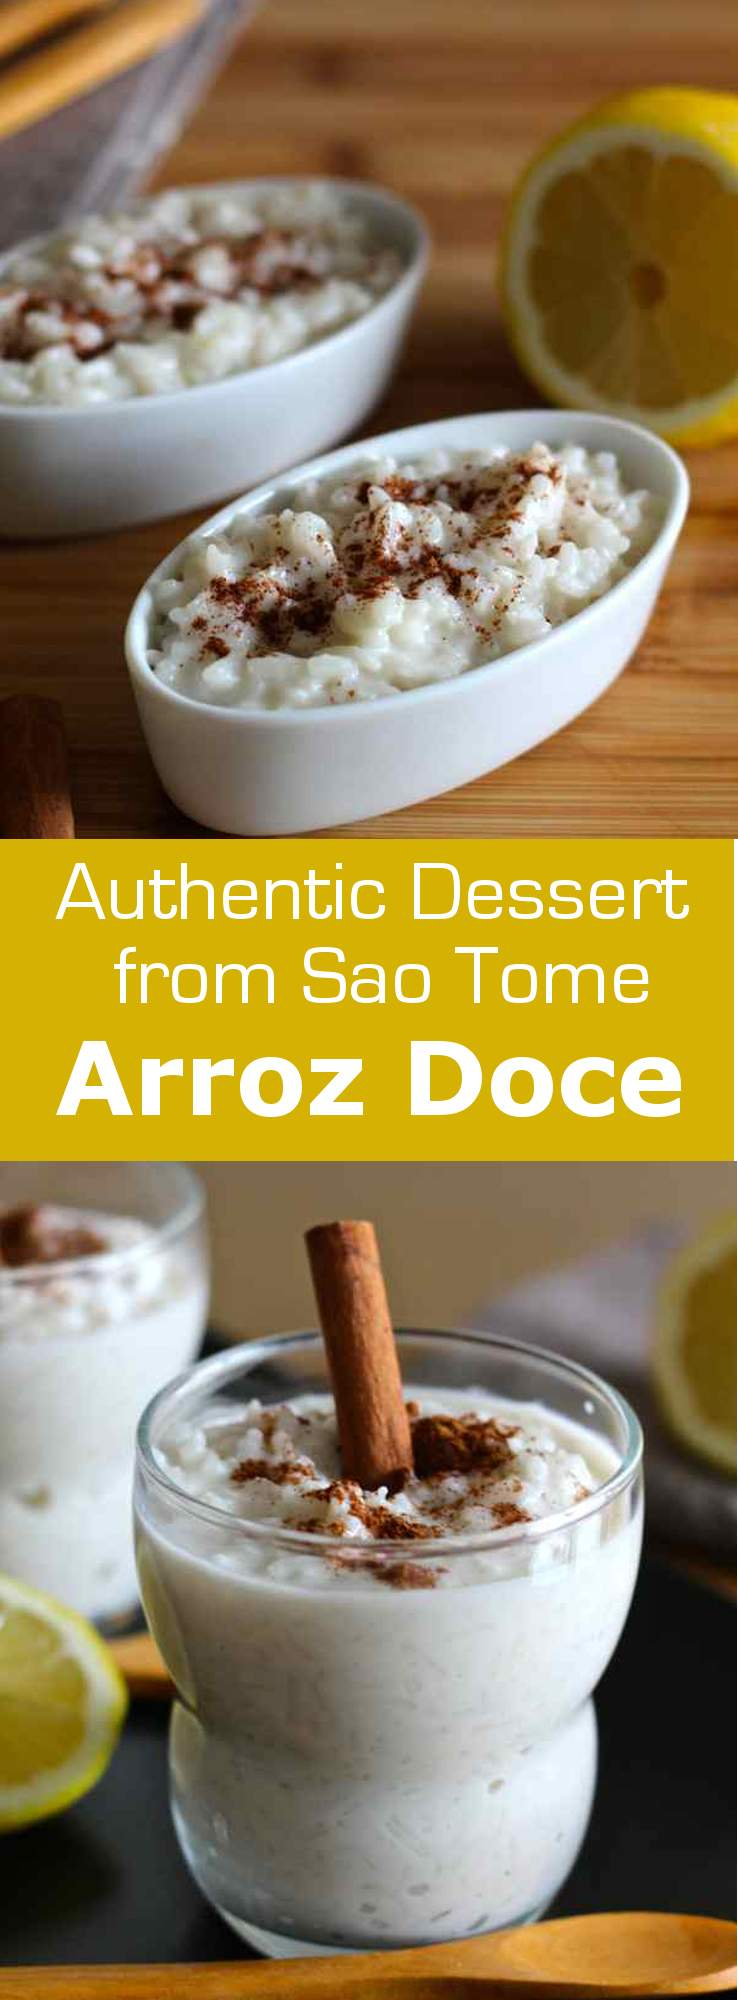 Arroz doce is one of the most popular desserts of São Tomé and Príncipe. It is prepared with coconut milk and flavored with lemon and cinnamon. #dessert #196flavors